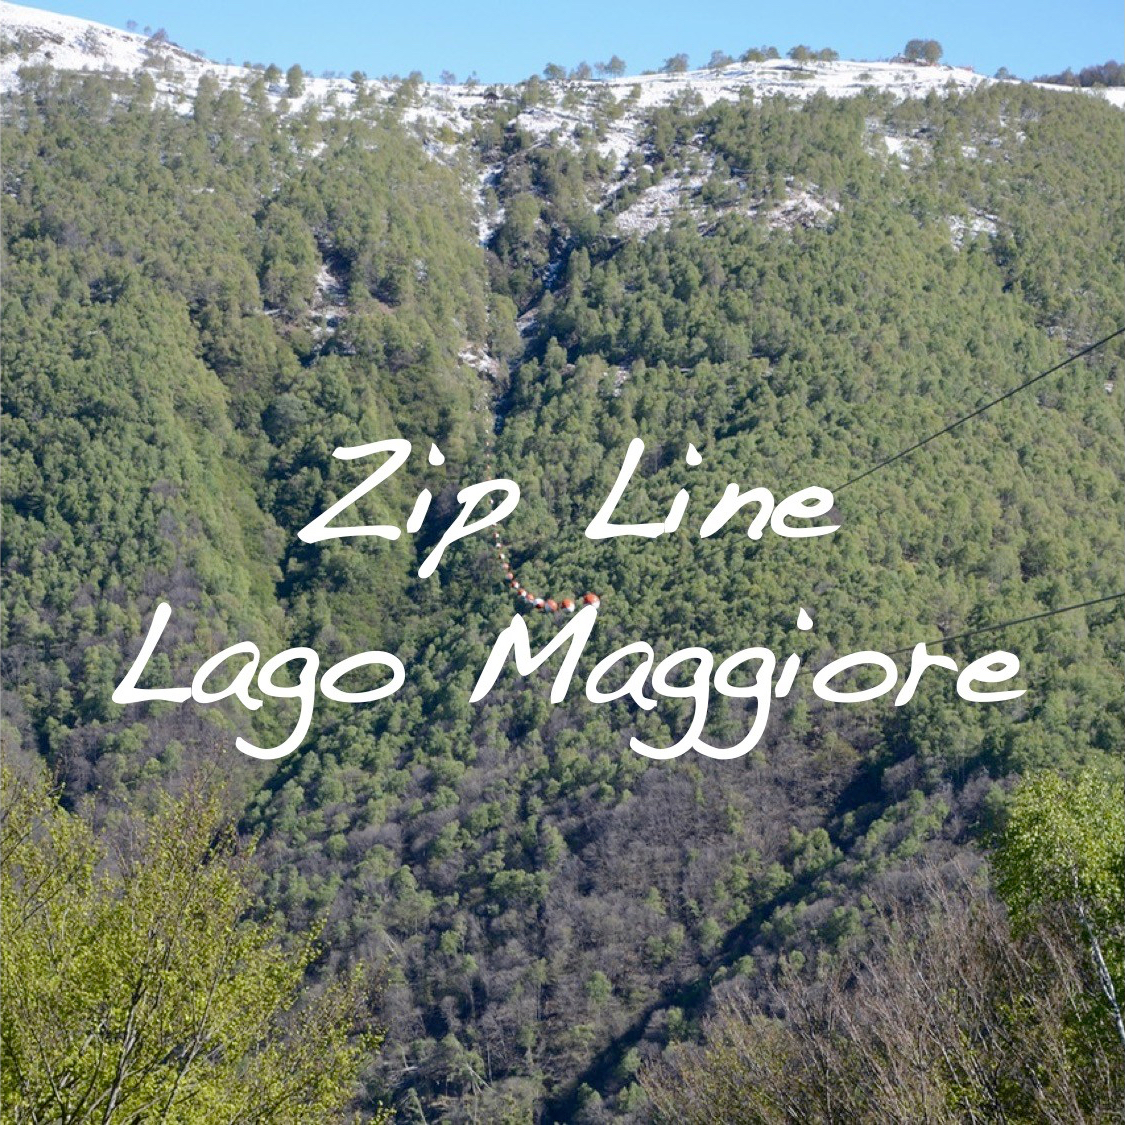 Premeno, Lago Maggiore, Italy | Our First Exhilarating Zip Line Experience